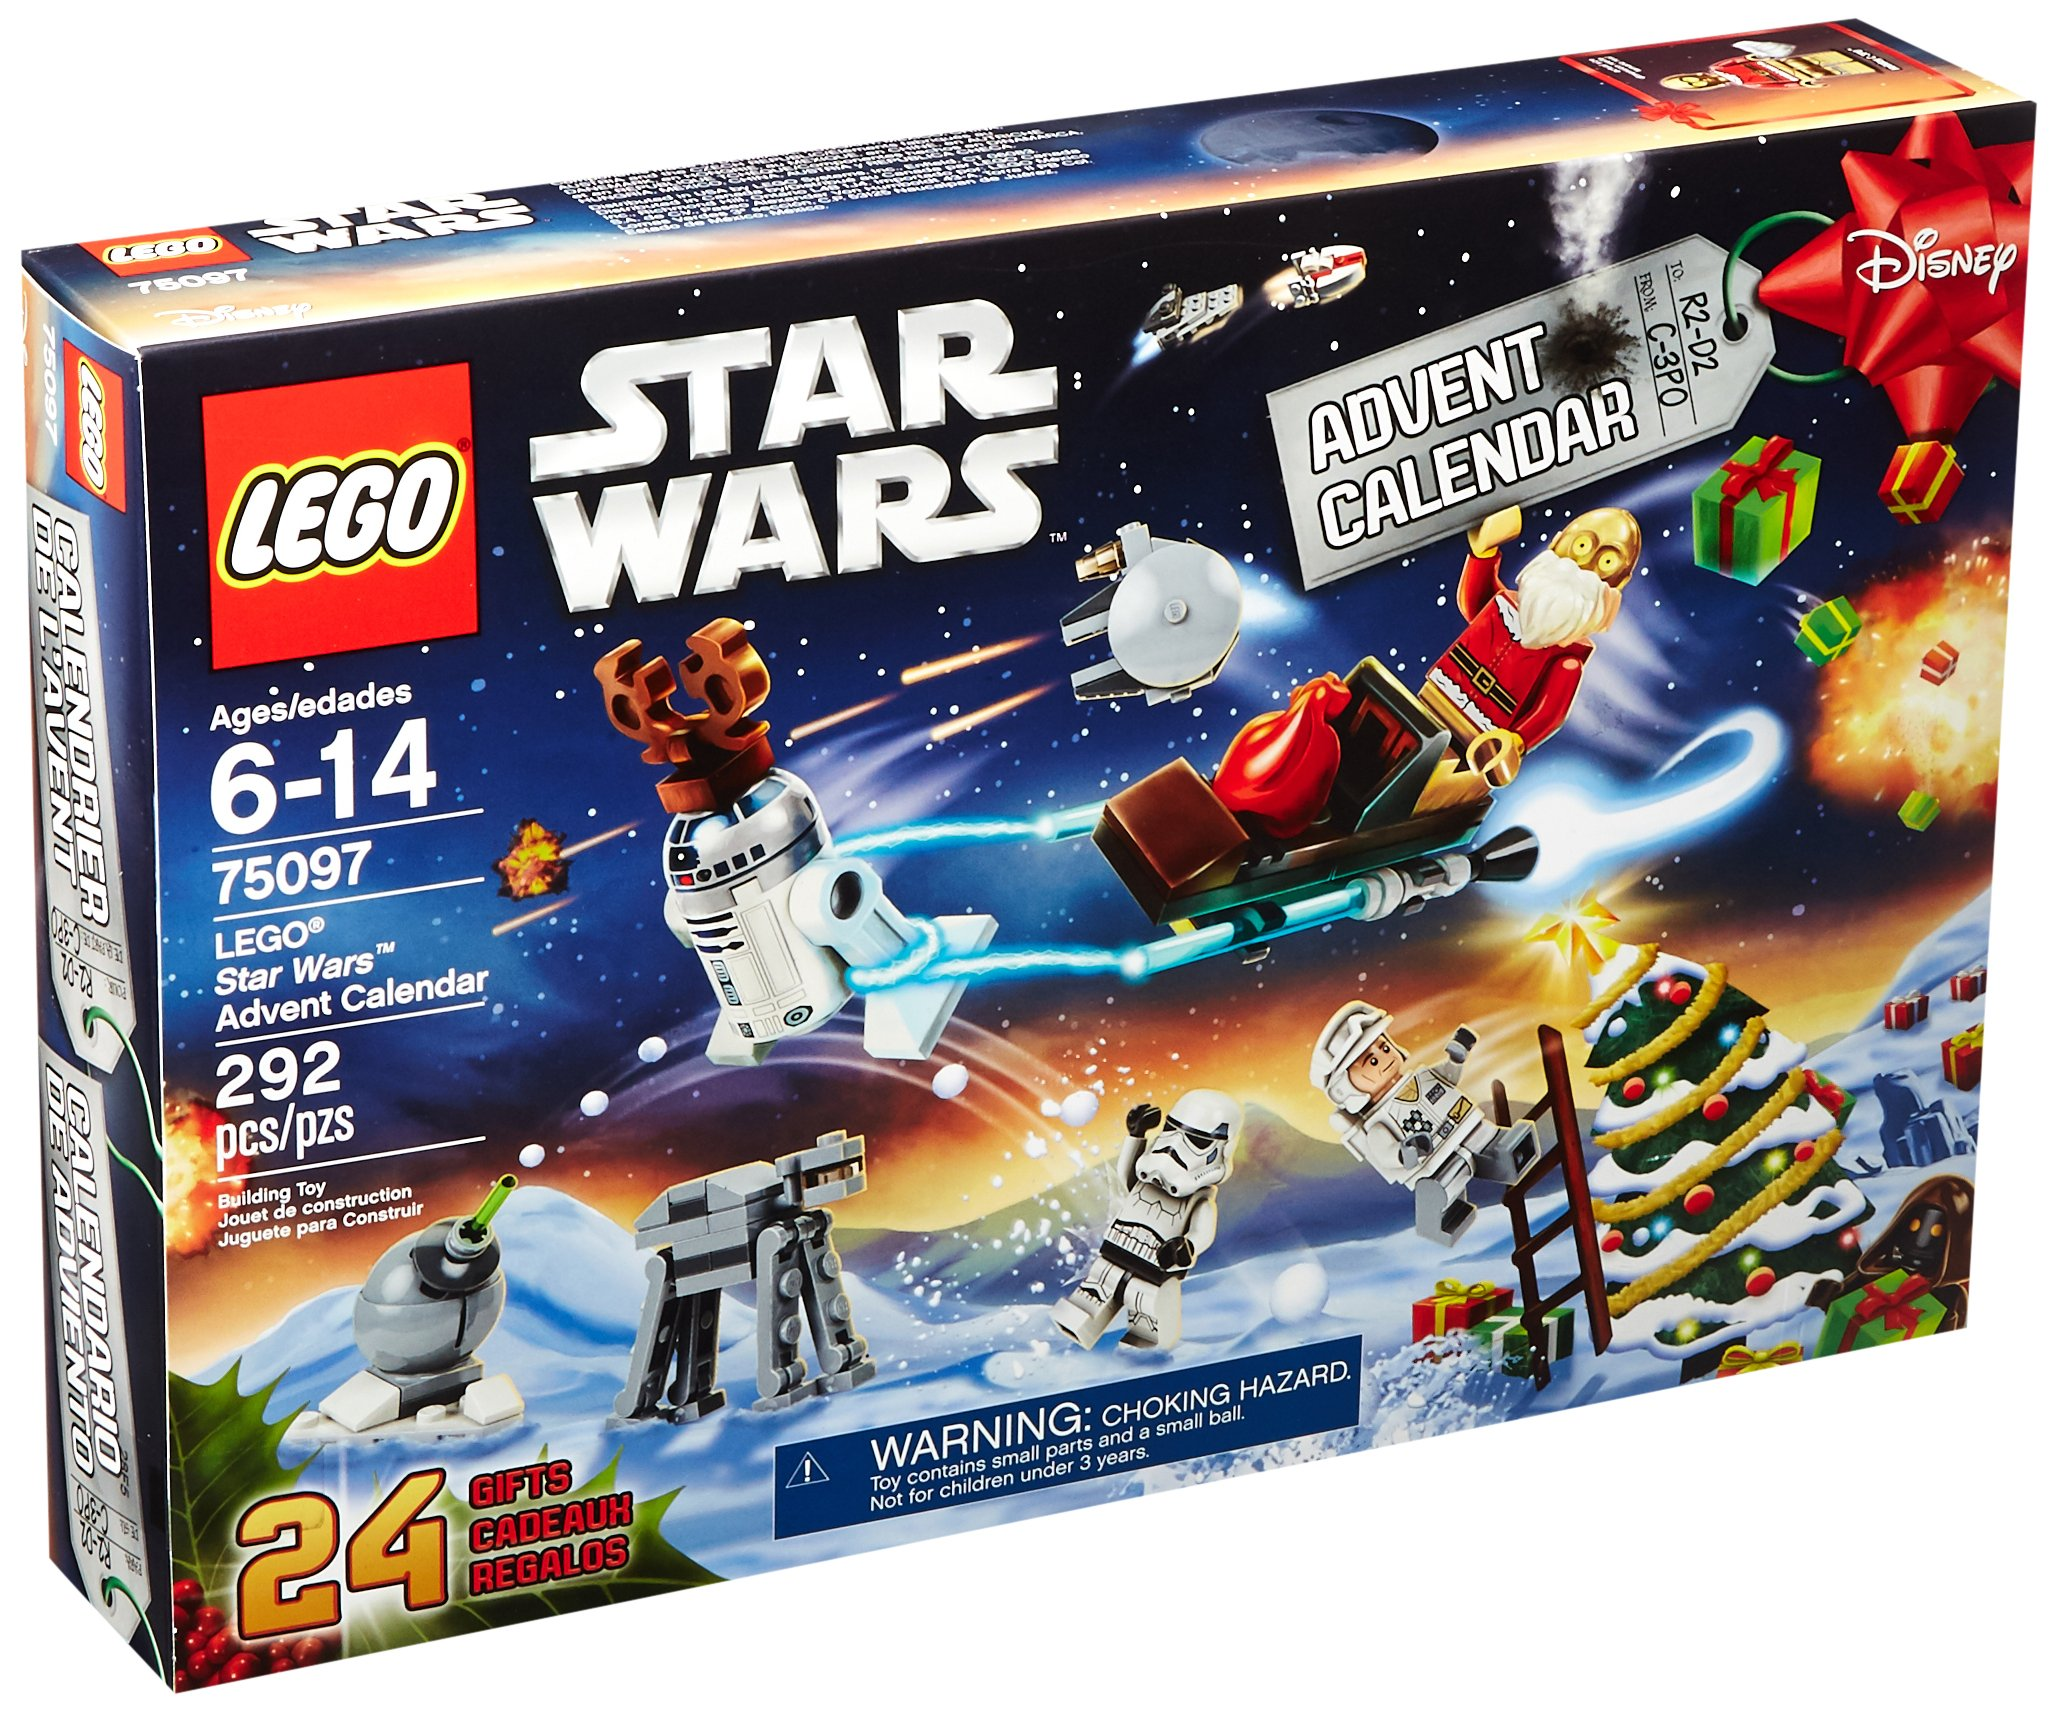 LEGO Star Wars 75097 Advent Calendar Building Kit (Discontinued by manufacturer)